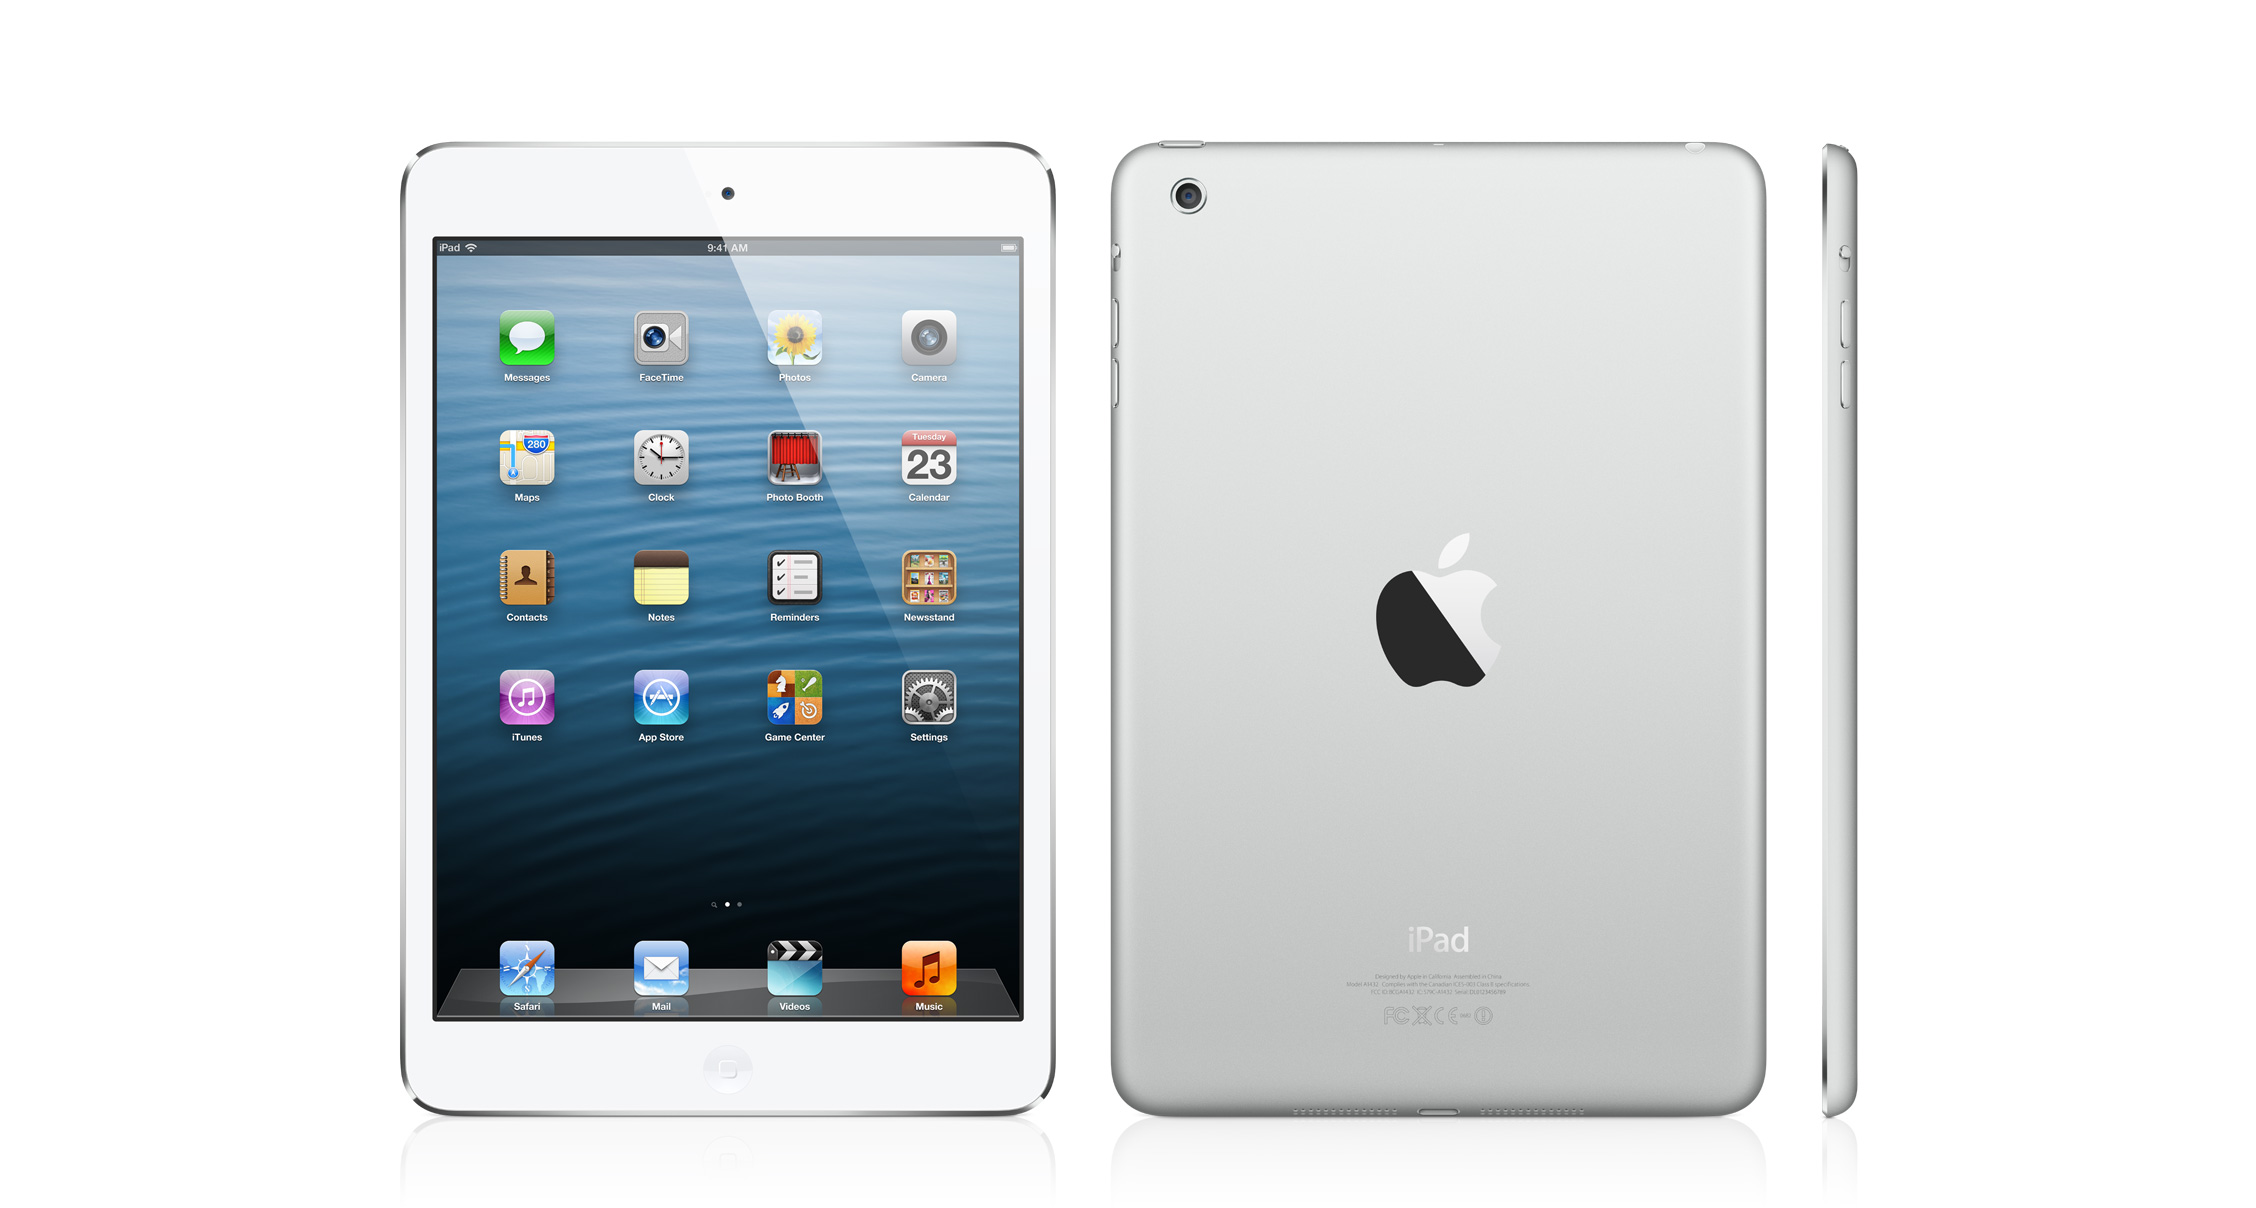 Ipad: IPad Mini, Updated Mac Mini, Redesigned